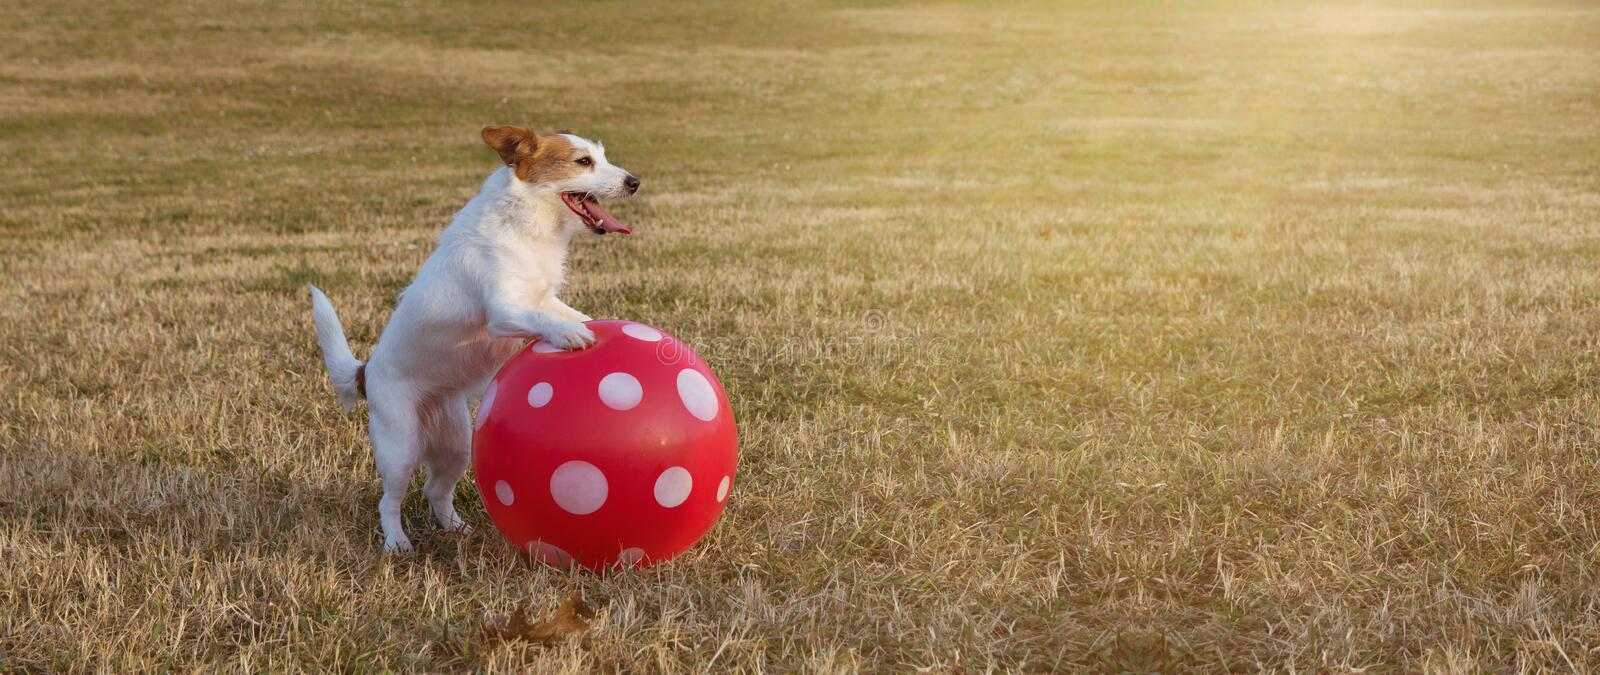 BANNER JACK RUSSELL PLAYING FOOTBALL SOCCER WITH A RED BALL AT PARK GRASS ON SUMMER VACATIONS royalty free stock images